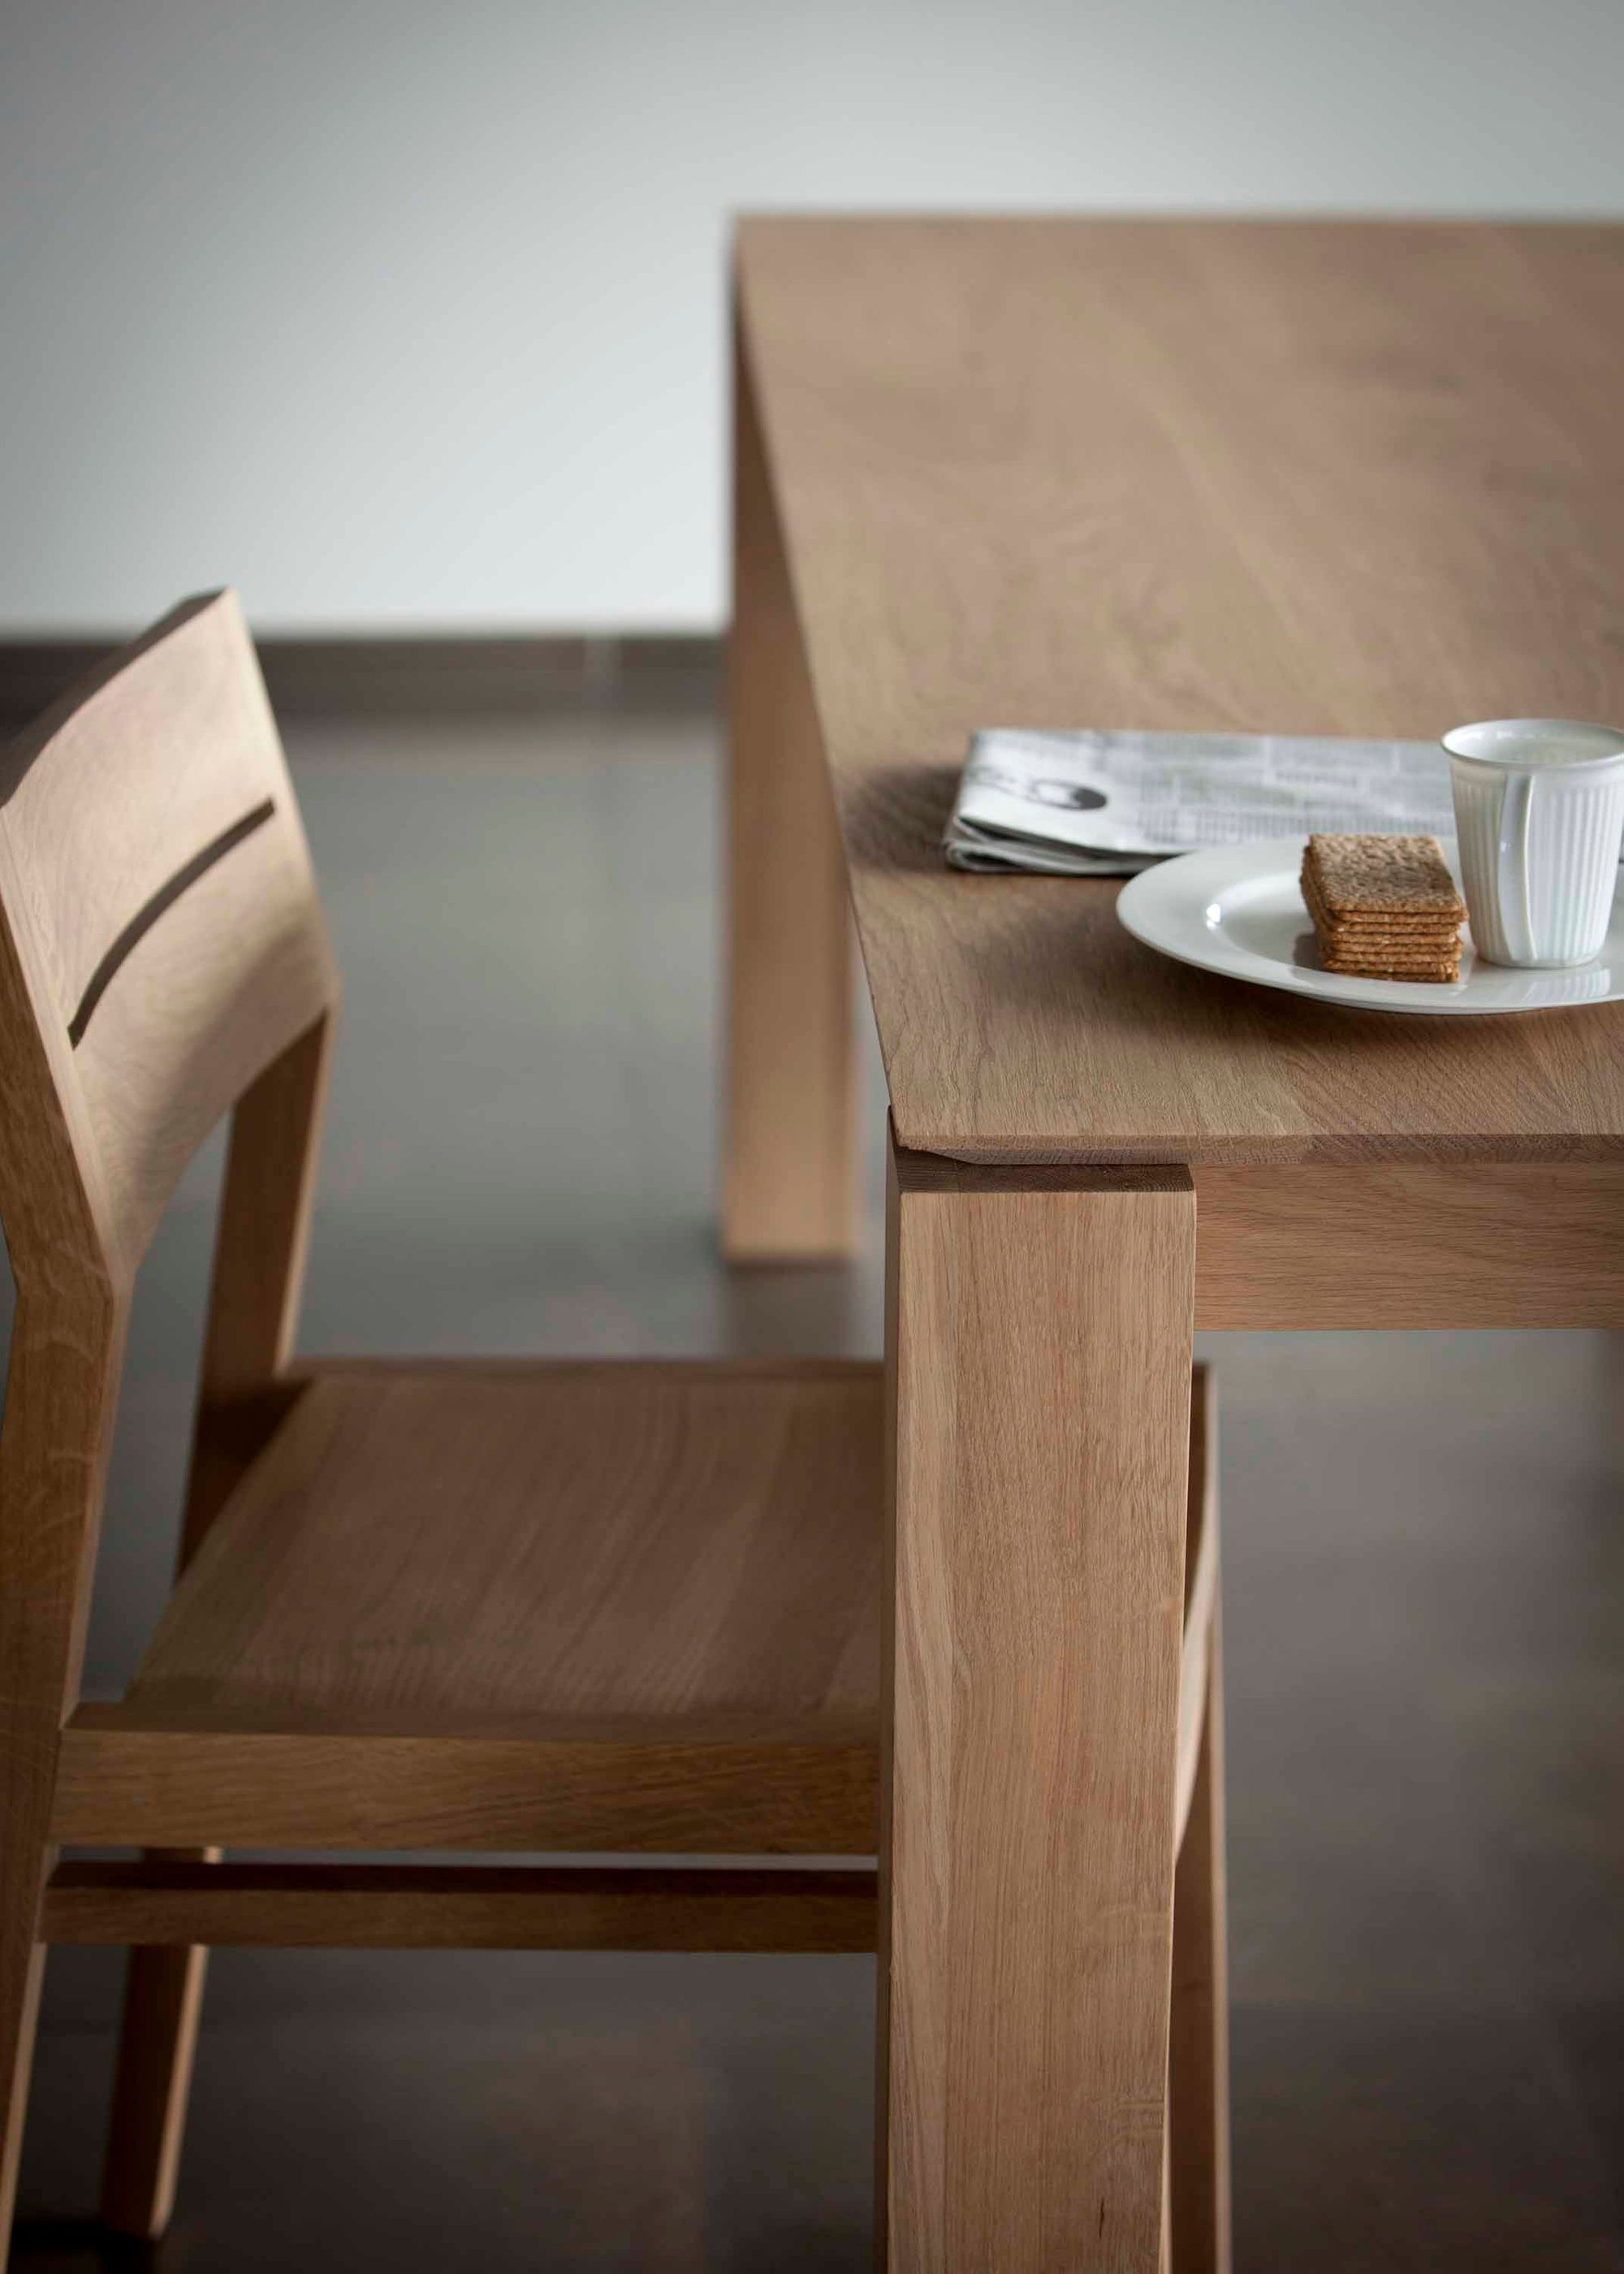 The Beauty Of The Ex 1 Chair And Slice Dining Table Lies In Their